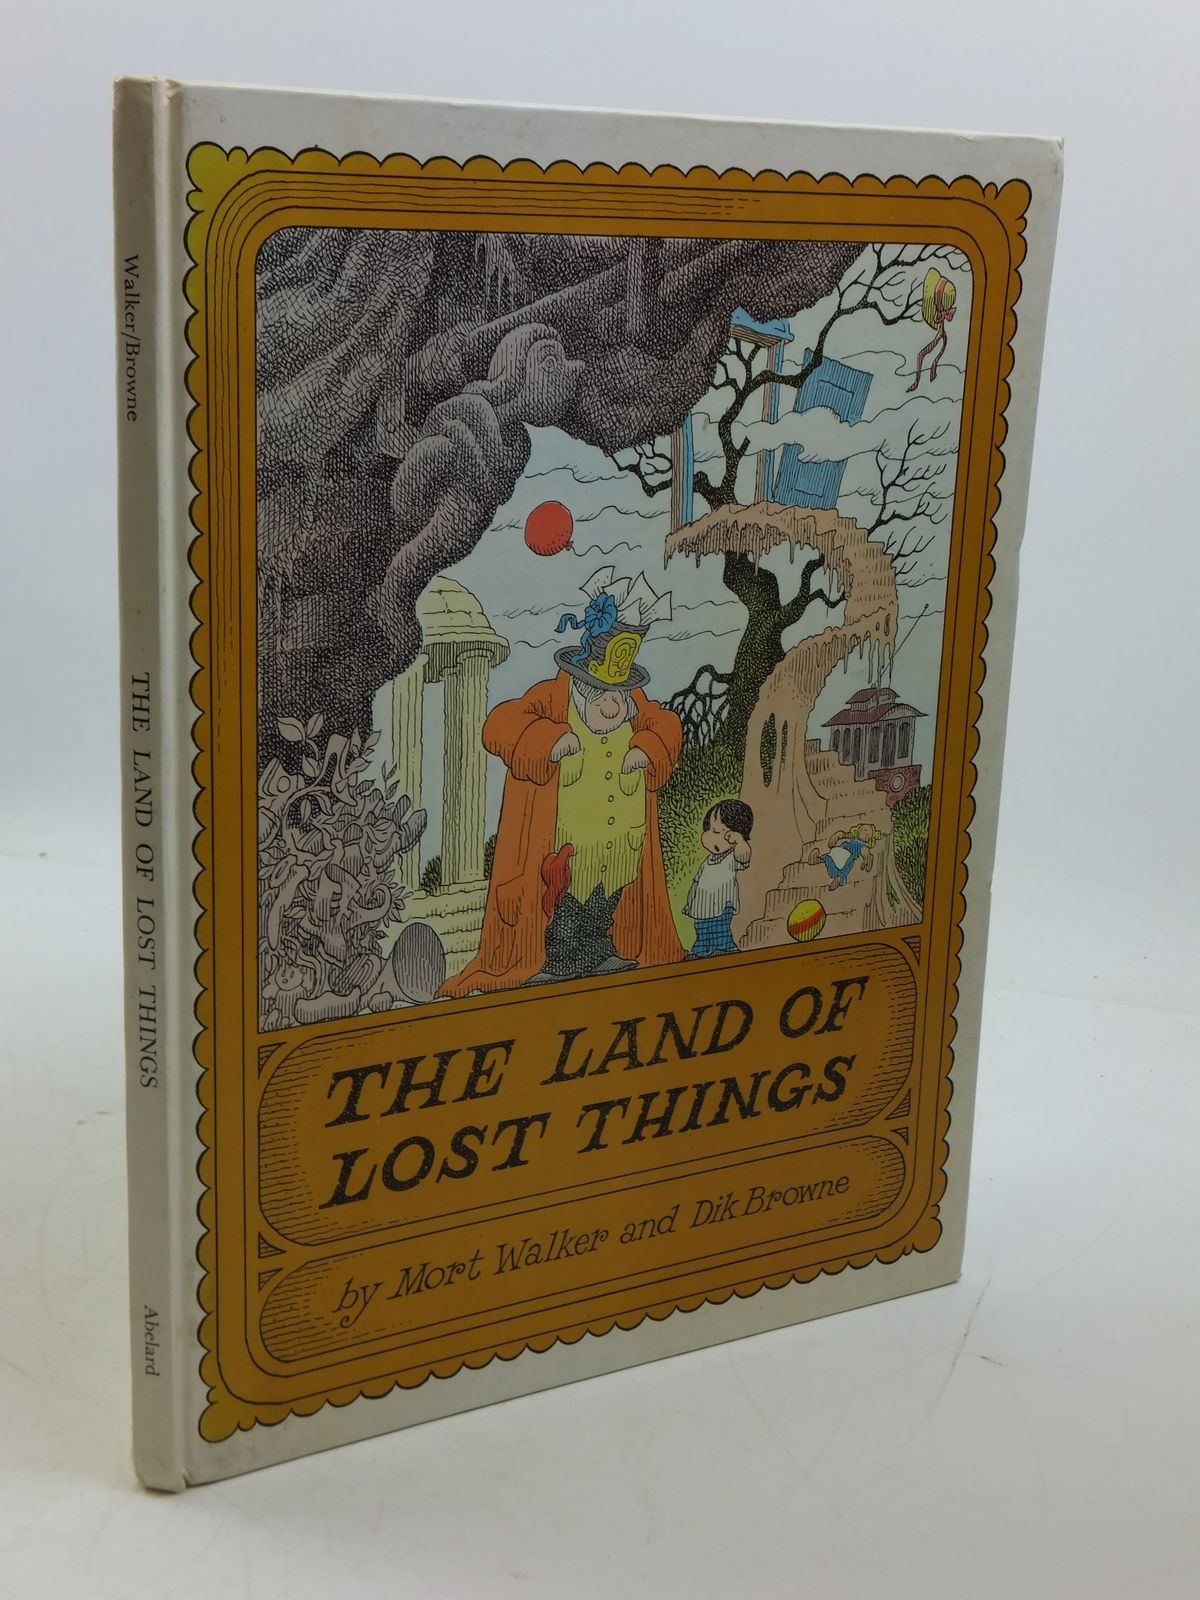 Photo of THE LAND OF LOST THINGS written by Walker, Mort illustrated by Browne, Dik published by Abelard-Schuman (STOCK CODE: 1807419)  for sale by Stella & Rose's Books